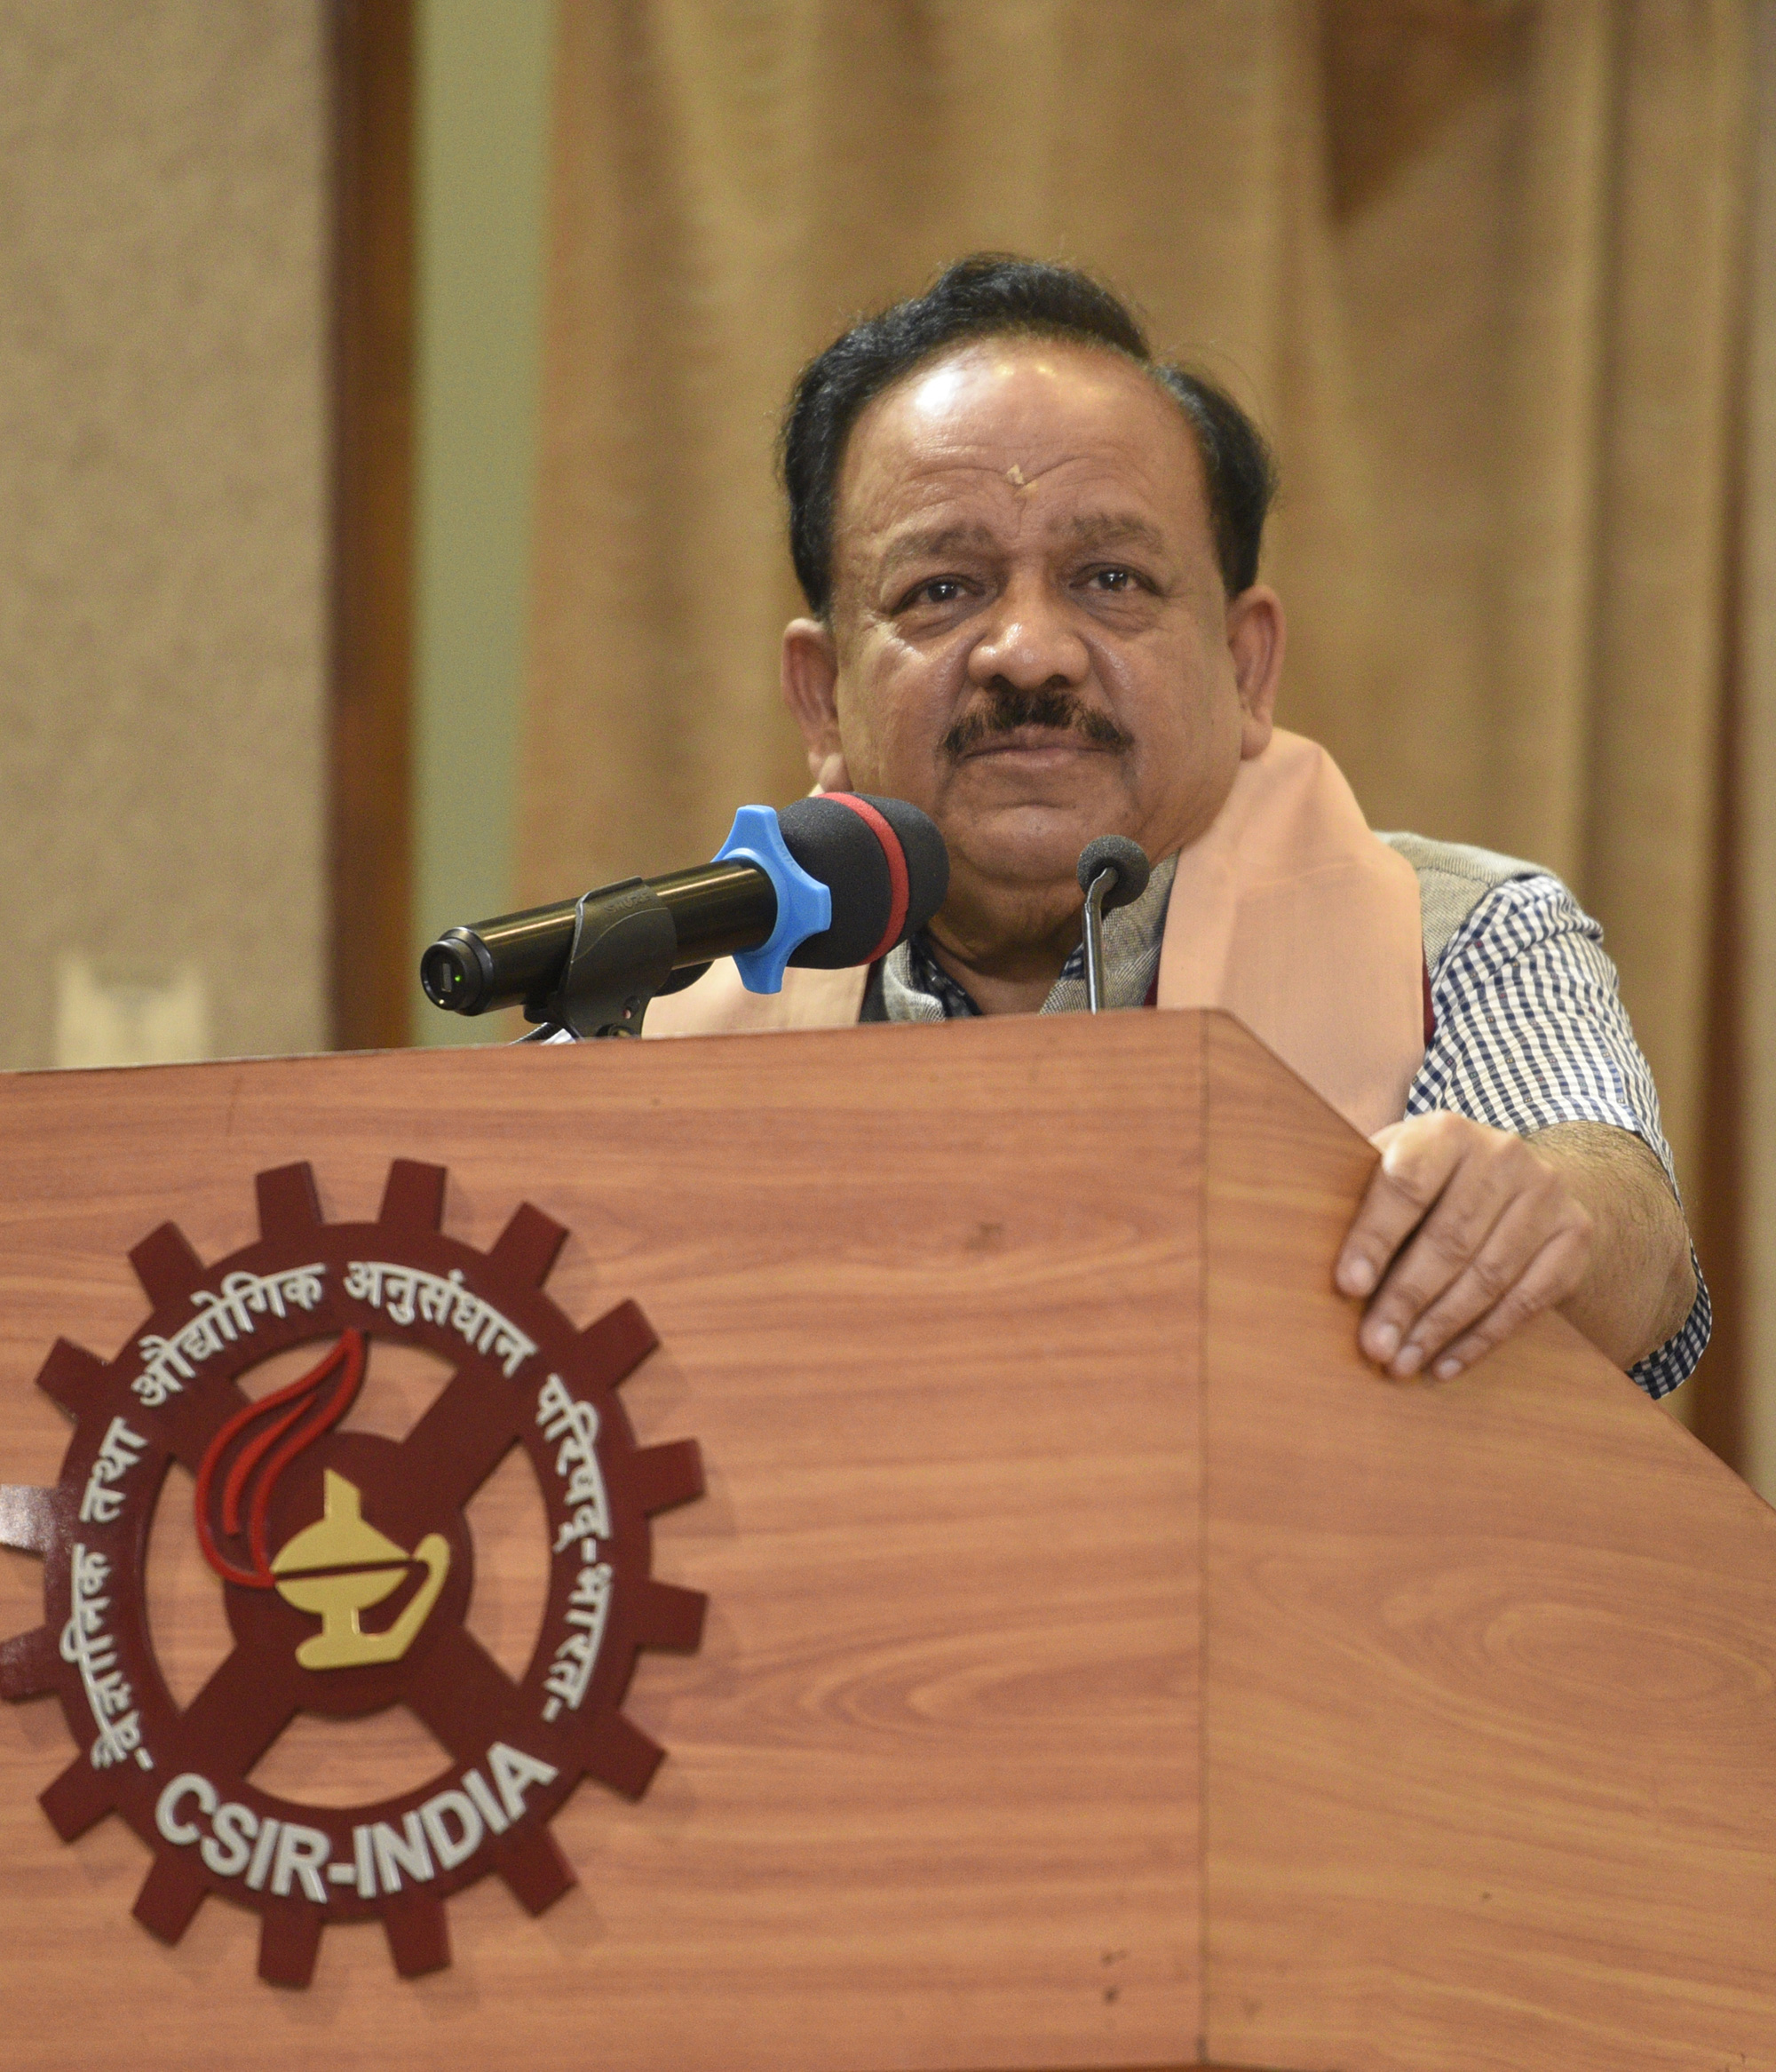 At the 24th Conference of Parties taking place with the hope of instituting a framework that would act as a guide to operationalize the Paris climate pact, India's environment minister, Harsh Vardhan, declared that India is expected to surpass the commitments that it had made  three years ago.